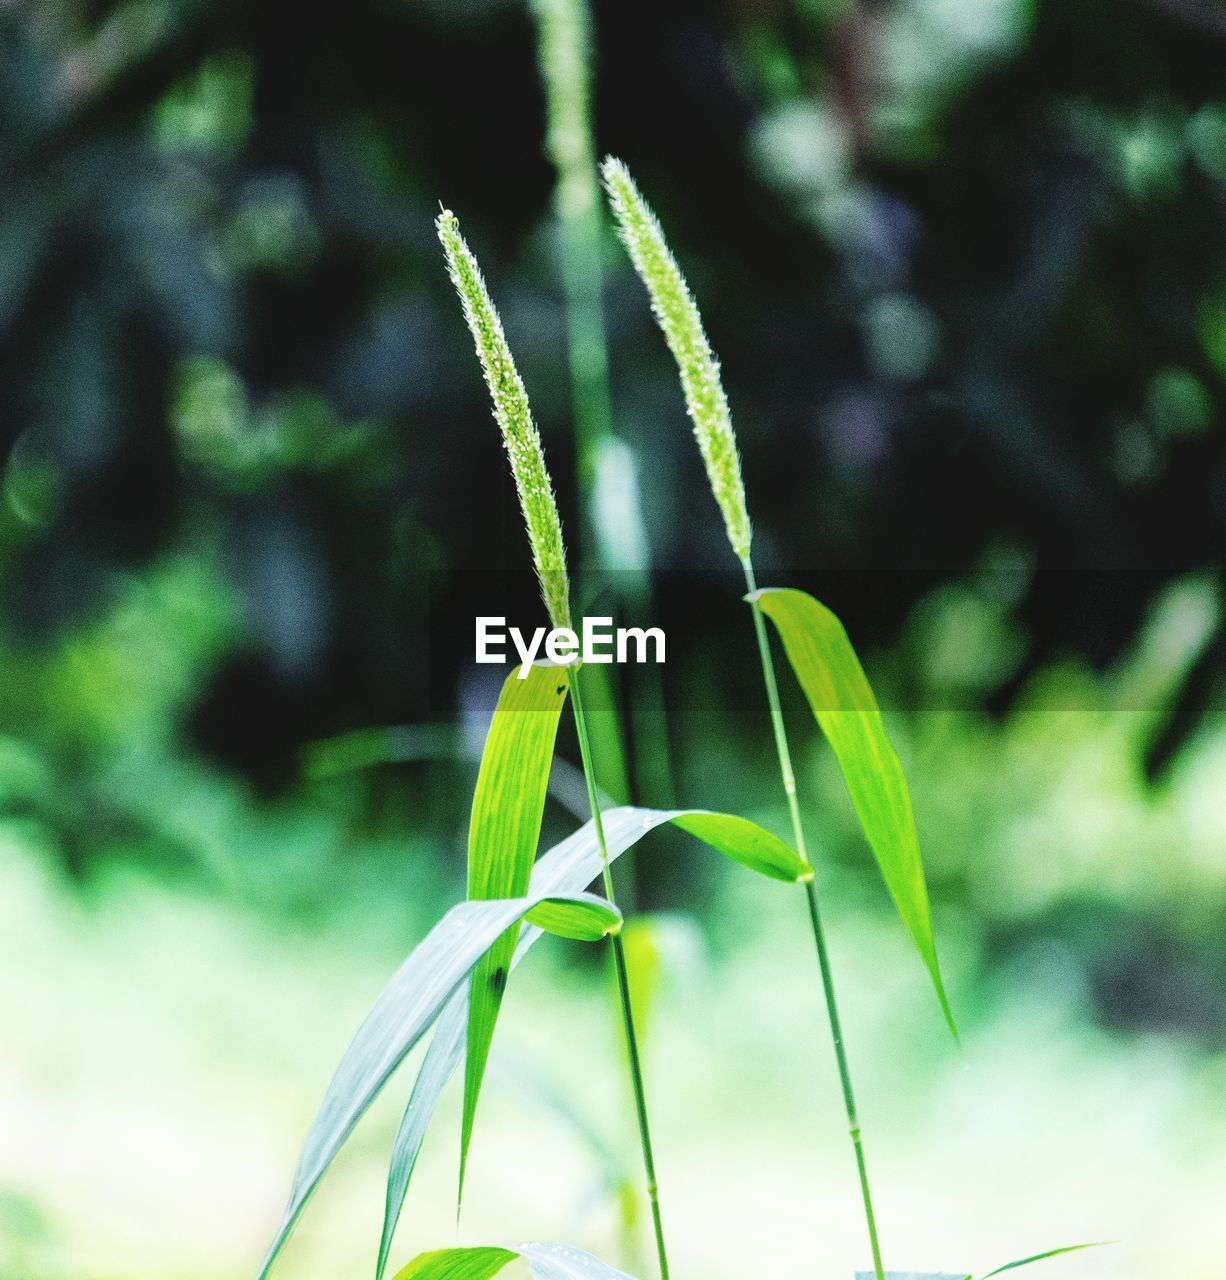 growth, green color, plant, focus on foreground, close-up, no people, nature, plant part, leaf, beauty in nature, day, tranquility, outdoors, selective focus, sunlight, freshness, land, plant stem, vulnerability, environment, blade of grass